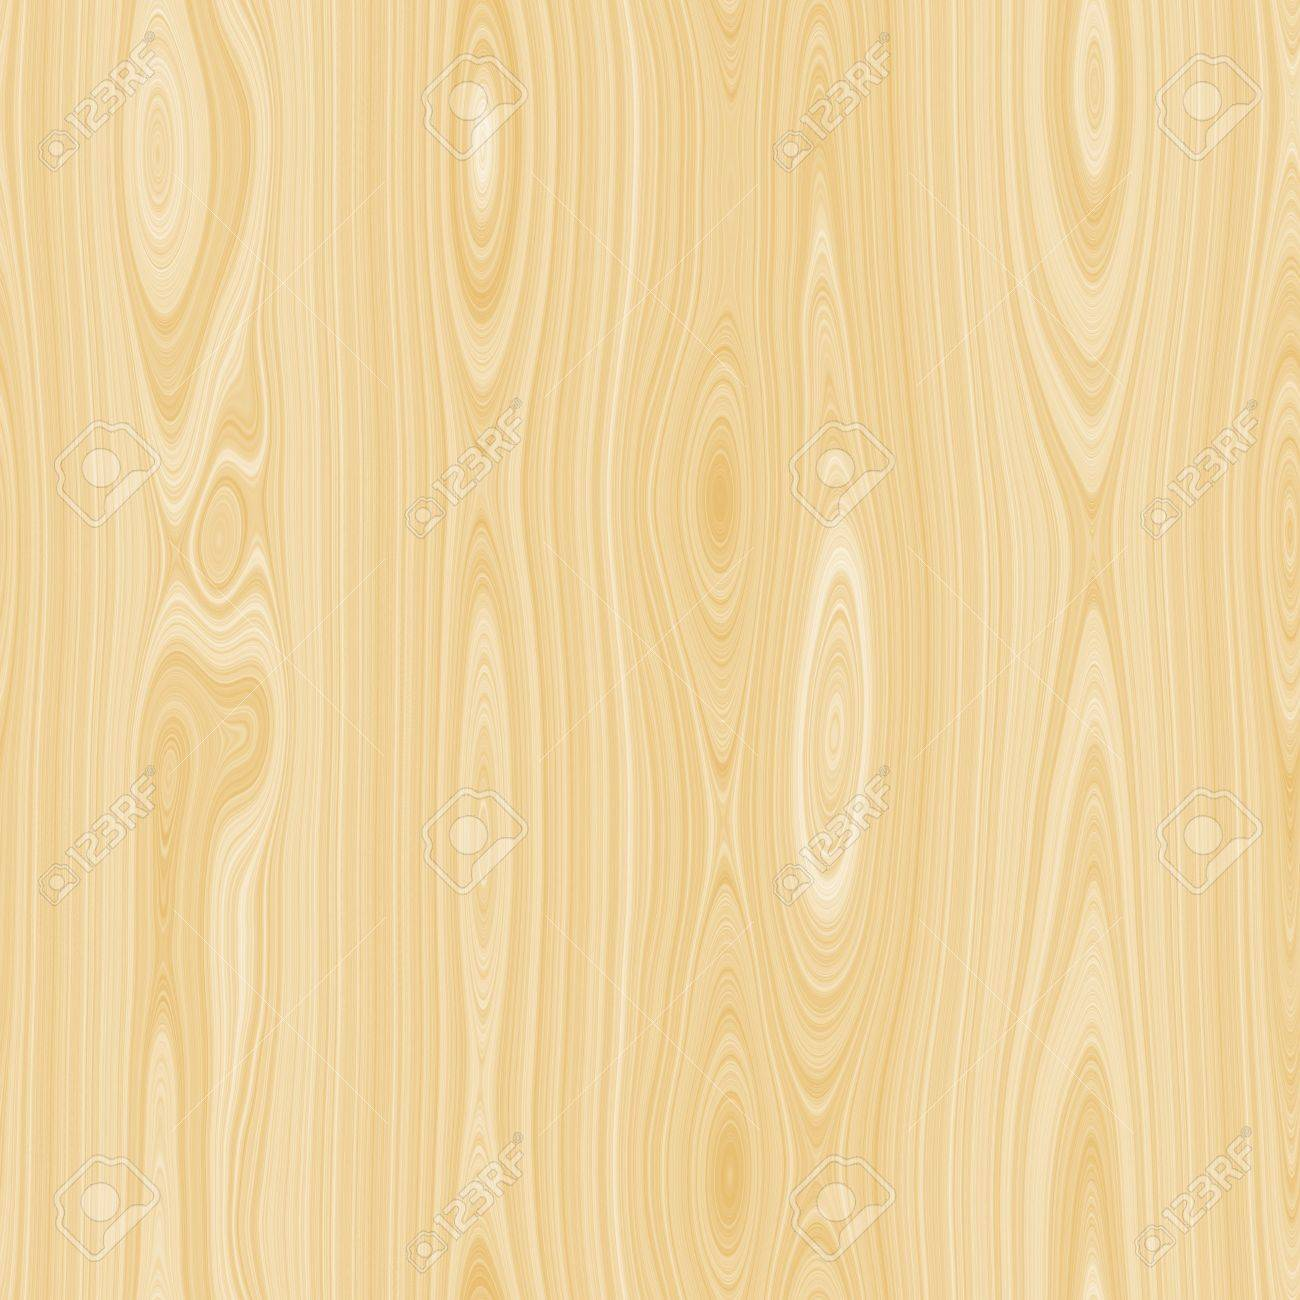 tileable wood texture. Seamless Tileable Wood Texture Stock Photo - 34312872 O